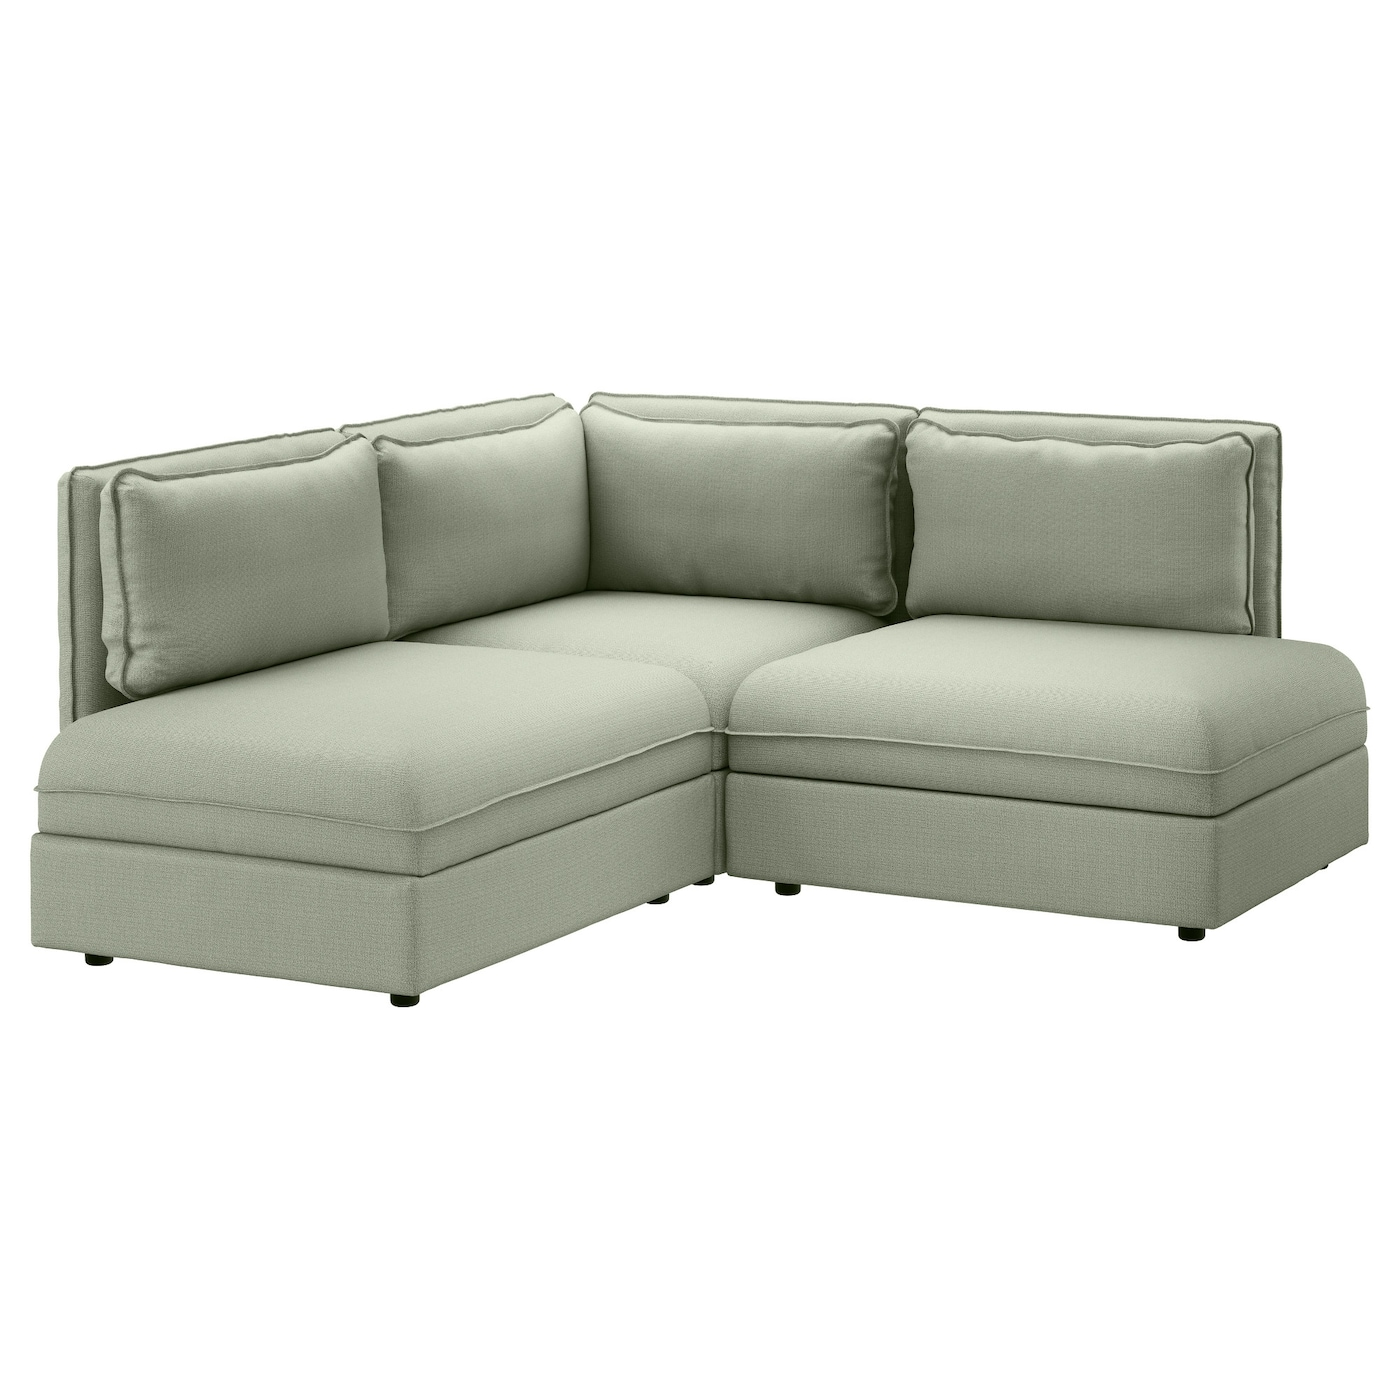 Corner Sofa Bed Green: Green Corner Sofa Holly Right Hand Chaise In Deep